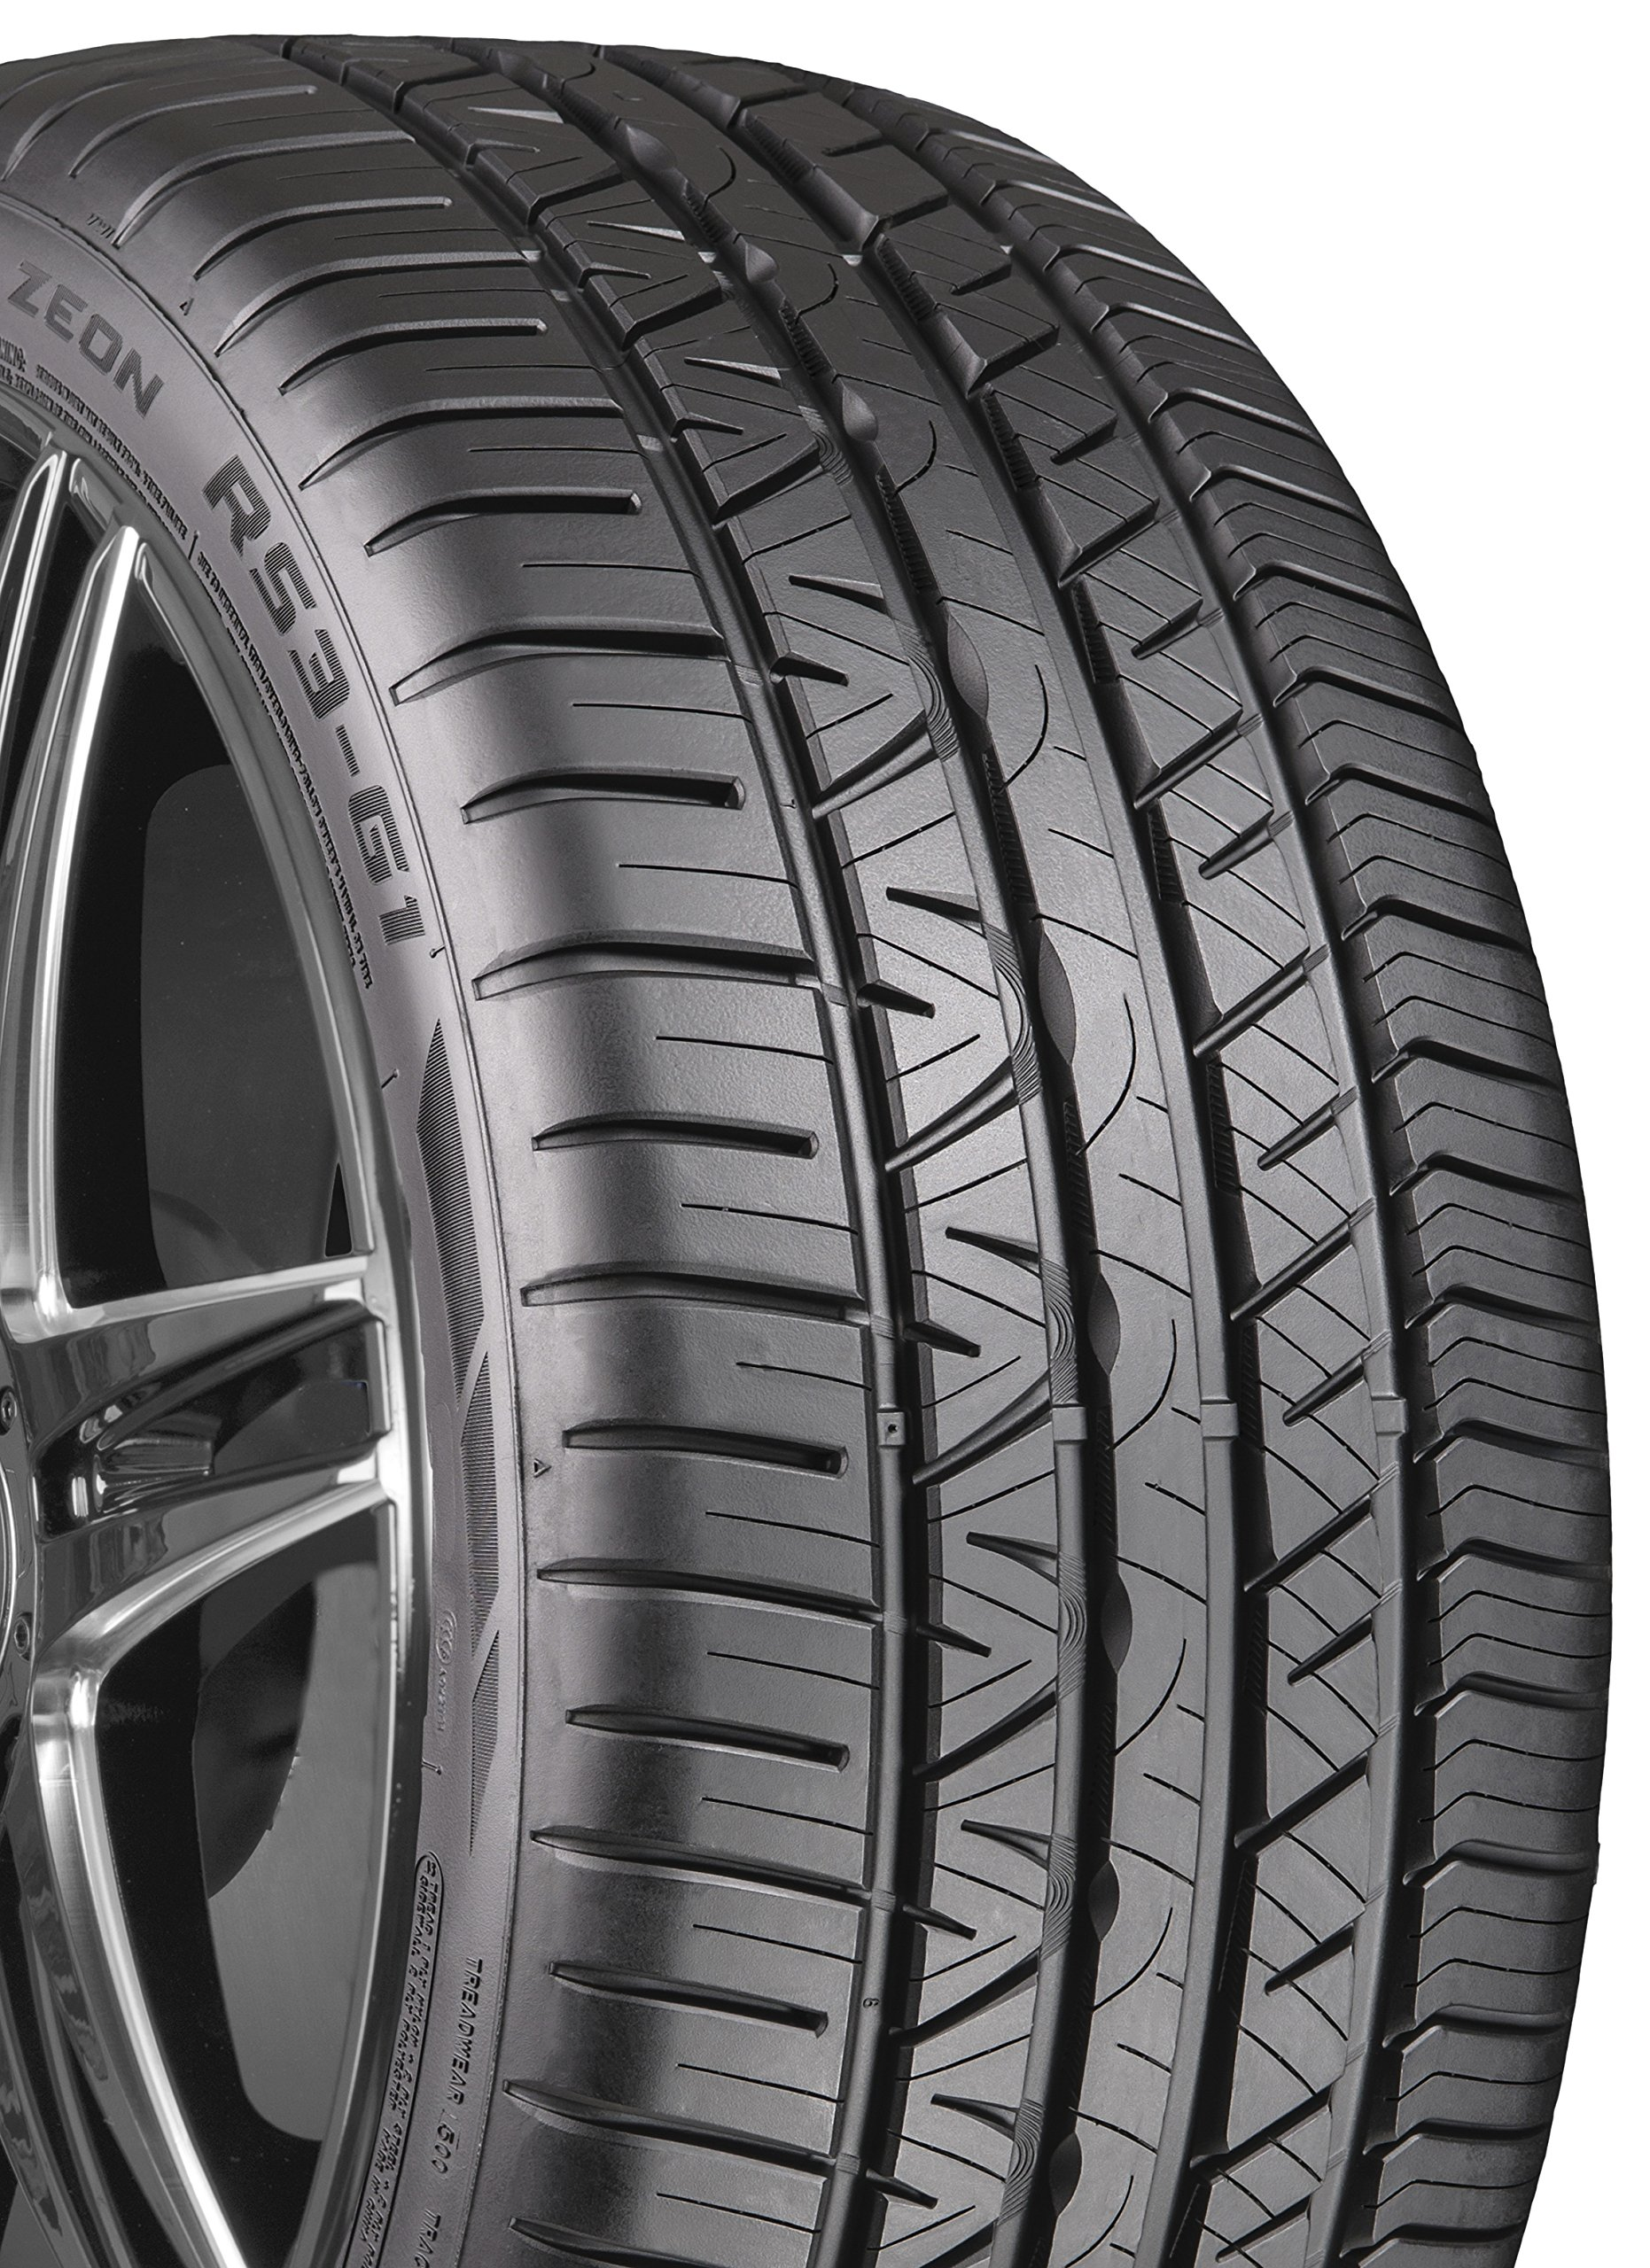 Cooper Tires Zeon RS3-G1 Performance Radial Tire - 245/40R18 97W